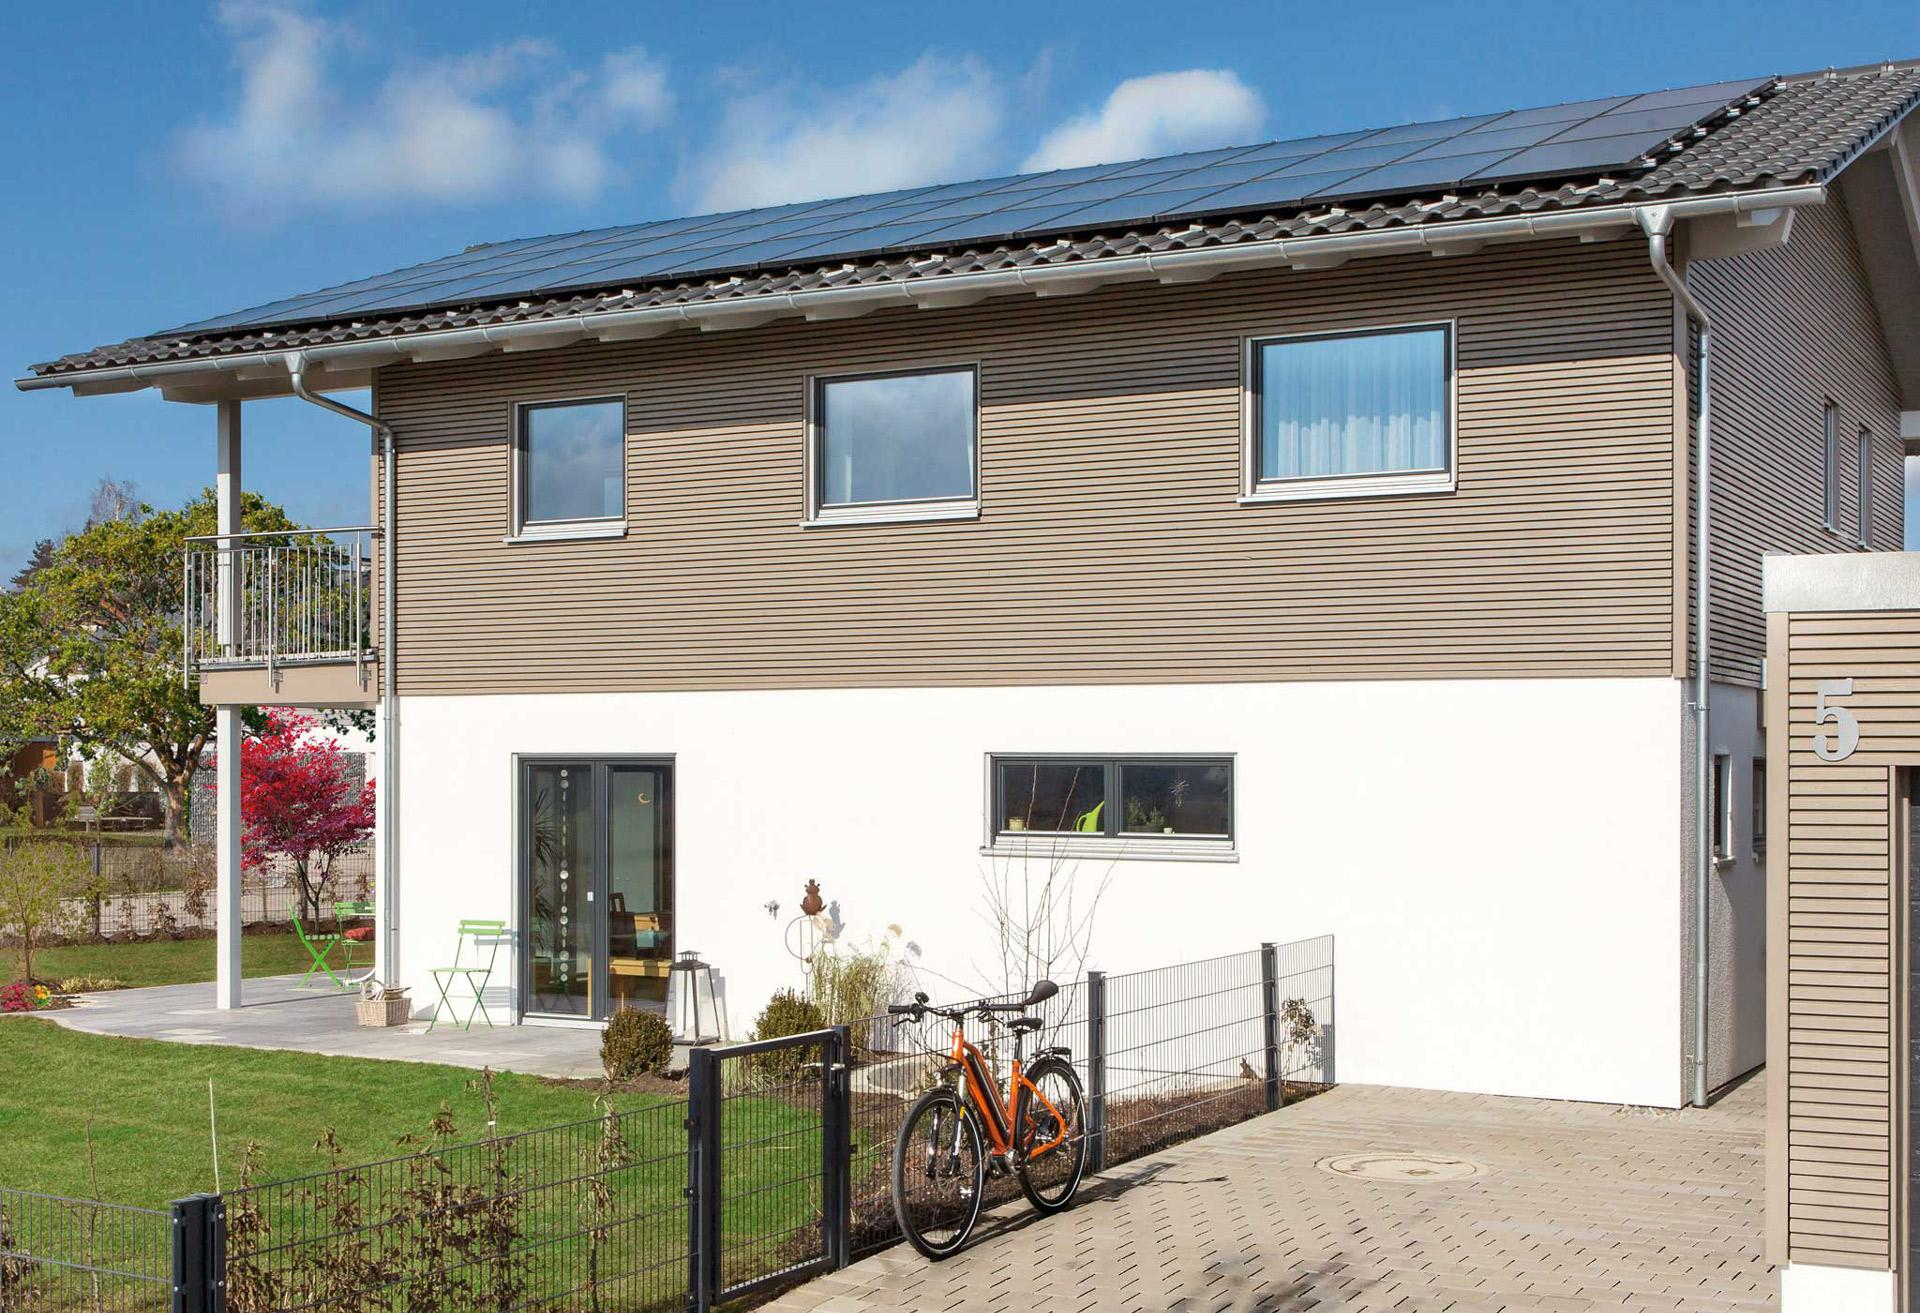 Energy efficiency house with photovoltaic system and energy storage